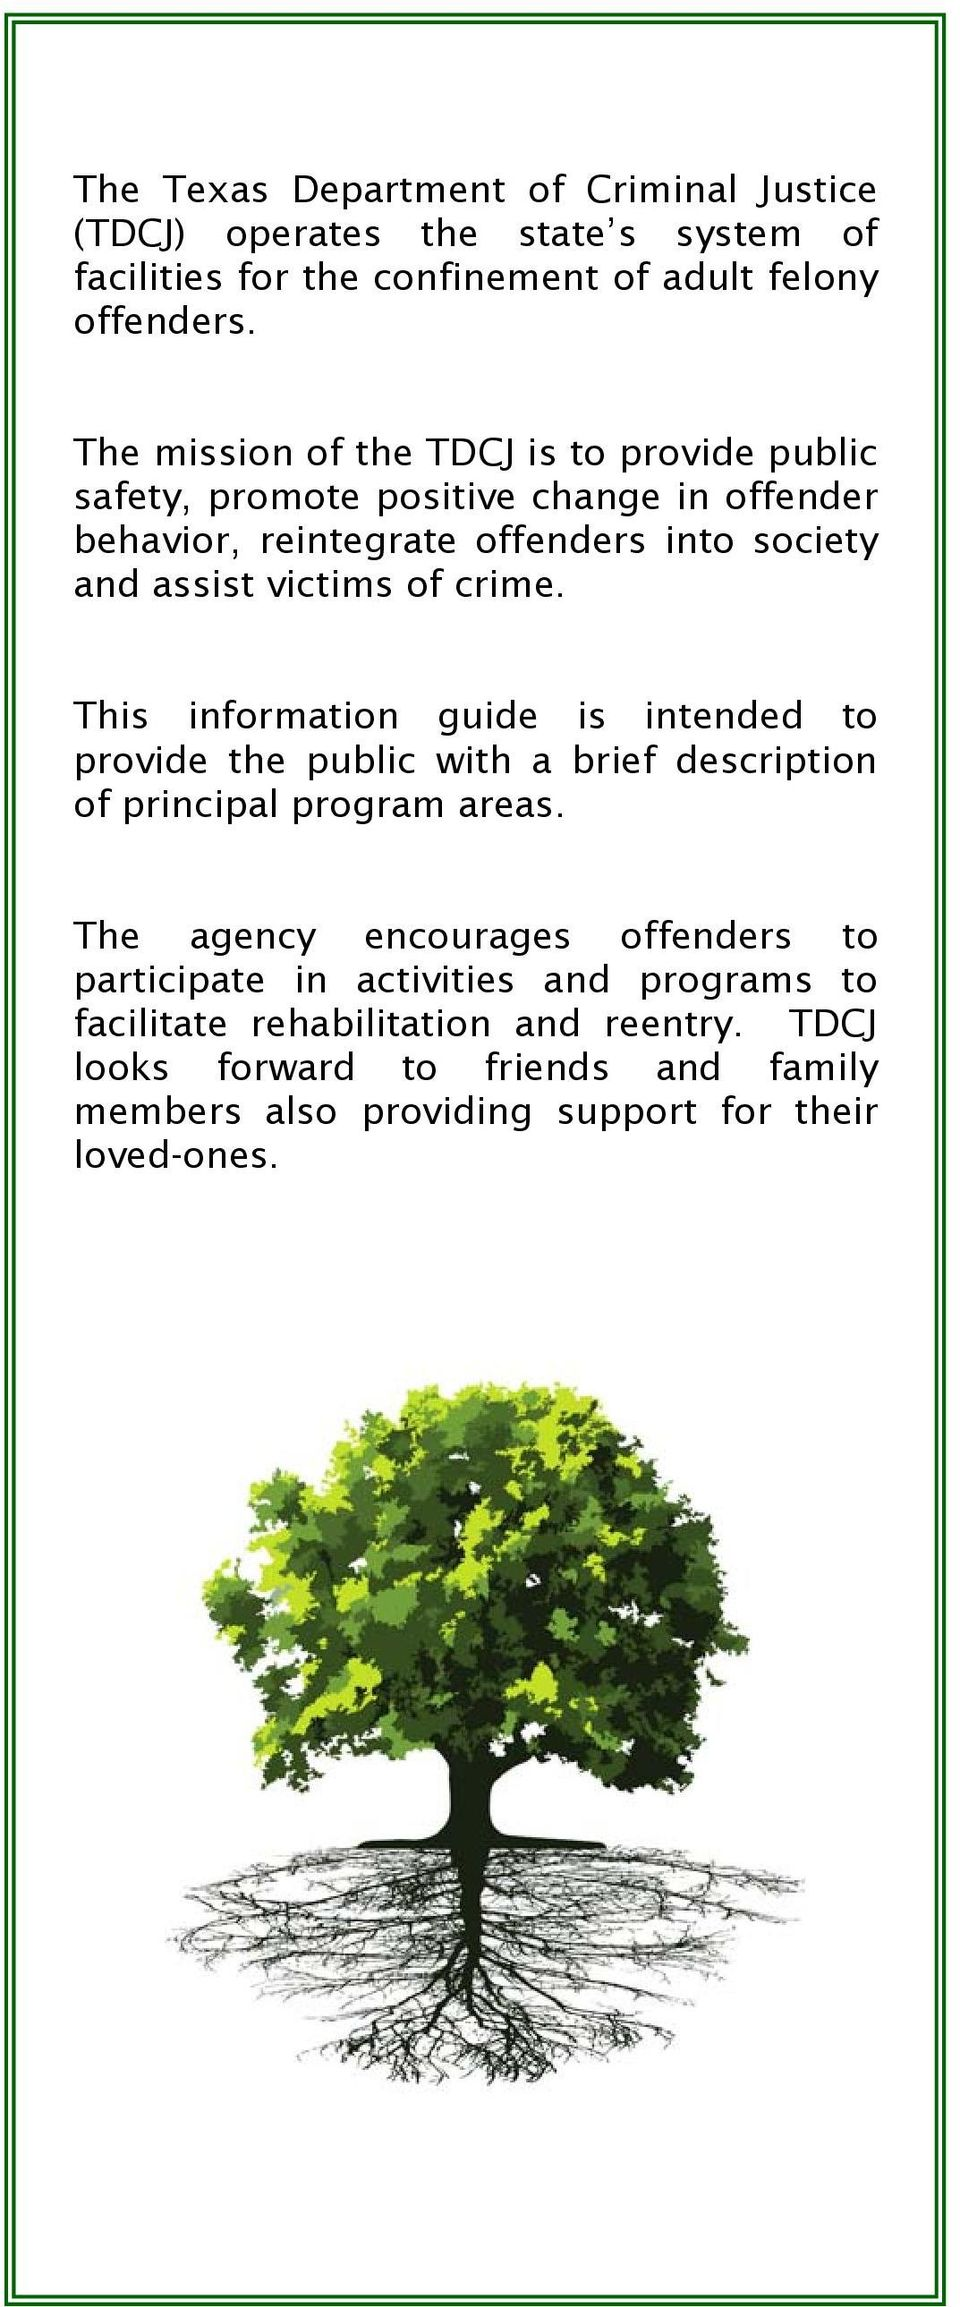 of crime. This information guide is intended to provide the public with a brief description of principal program areas.